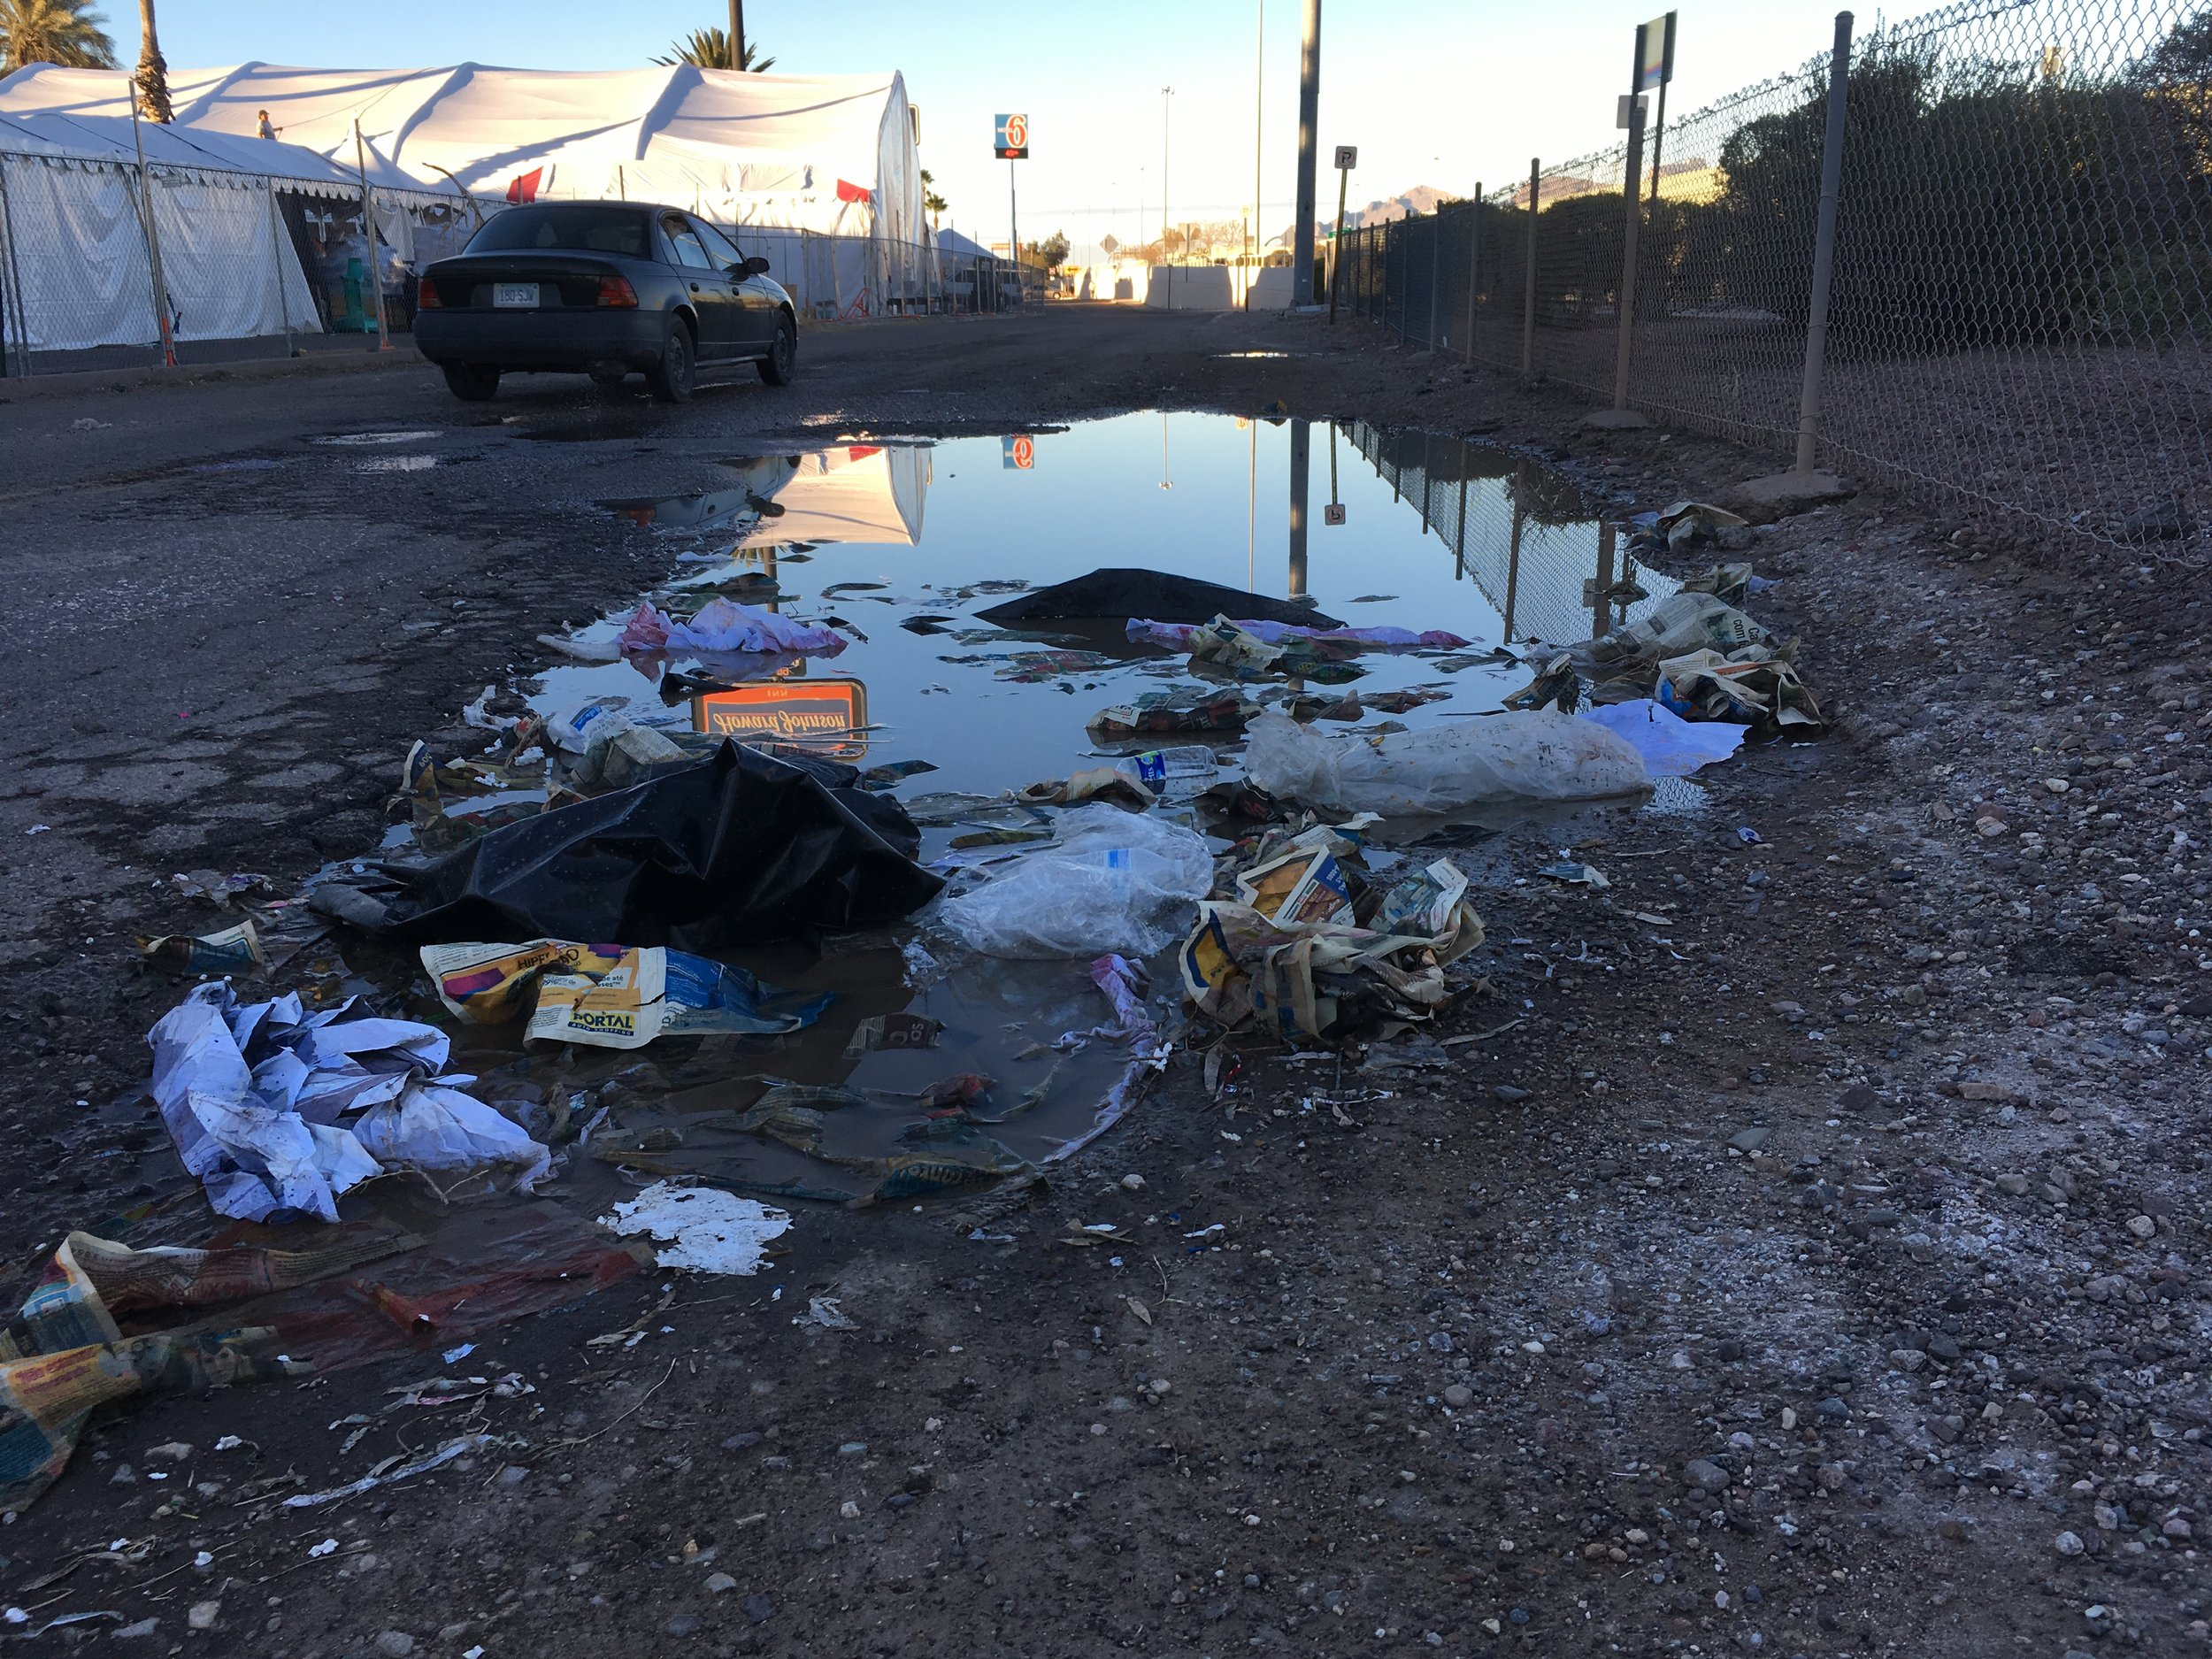 """Last Friday and again Sunday I decided to take my daily walk along the I-10 frontage road, and along Congress and 22nd streets west of Church Avenue. All of these are stretches that will be heavily traveled by pedestrians visiting gem and mineral shows in the next couple of weeks.  Over five hours I picked up 50 or so grocery bags of trash, everything from broken liquor bottles to socks. And I couldn't get close to finishing the job, especially on the south end of the I-10 frontage road, where this photo was taken.  I understand that the state and city cannot keep the roads repaired, much less regularly tend to the litter. But the gem and mineral shows are one of the main economic events of the year. Does no one in government or business give a thought to how Arizona and Tucson appear to these important visitors? I include business in this criticism because there was LOTS of trash in front of the freeway hotels that make money from the gem shows.  To be clear, my complaint isn't about the core of downtown. The Downtown Partnership's """"purple people"""" (identifiable by the color of their shirts) do a good job keeping the streets clean in the restaurant and entertainment districts along Broadway and Congress. Ditto for the area around the Tucson Convention Center. But go west into gem show territory and the garbage is gross."""